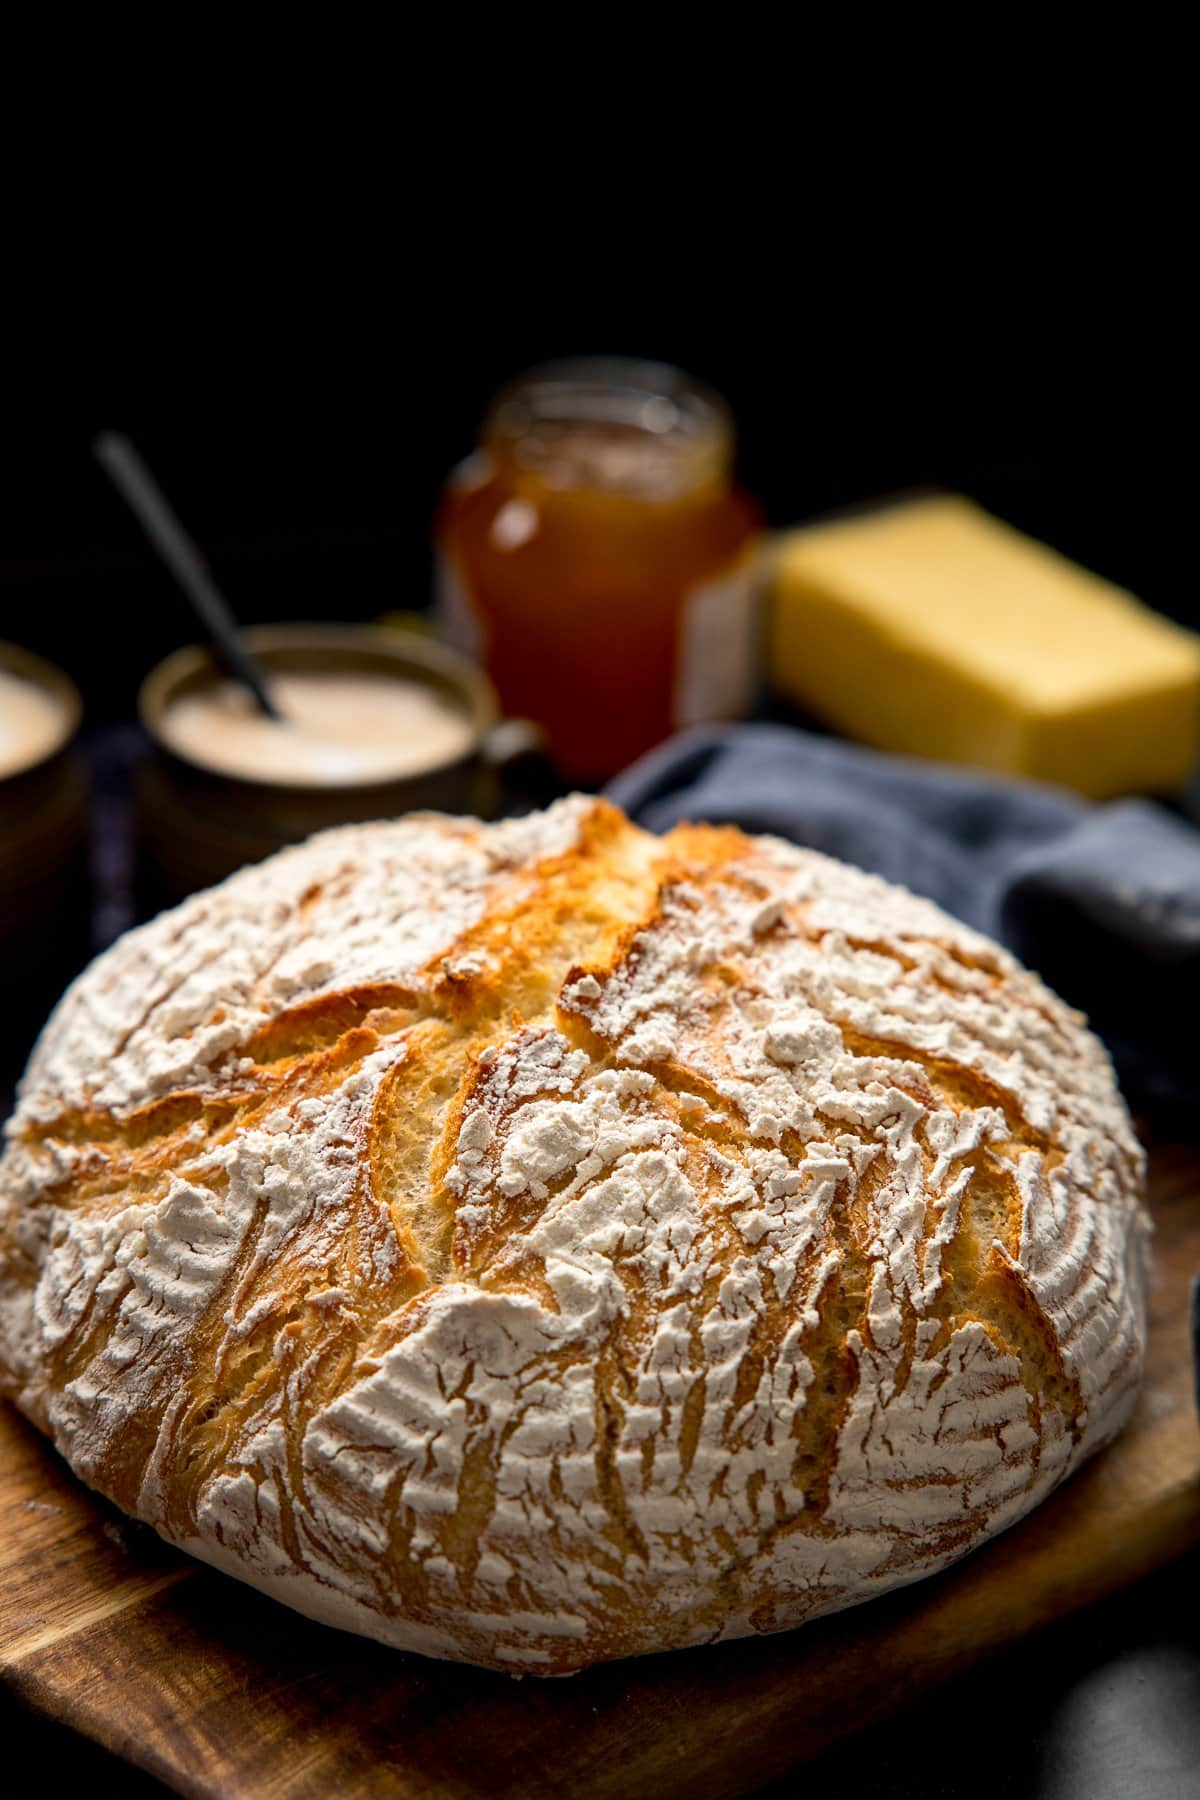 Artisan bread on a wooden board against a dark background